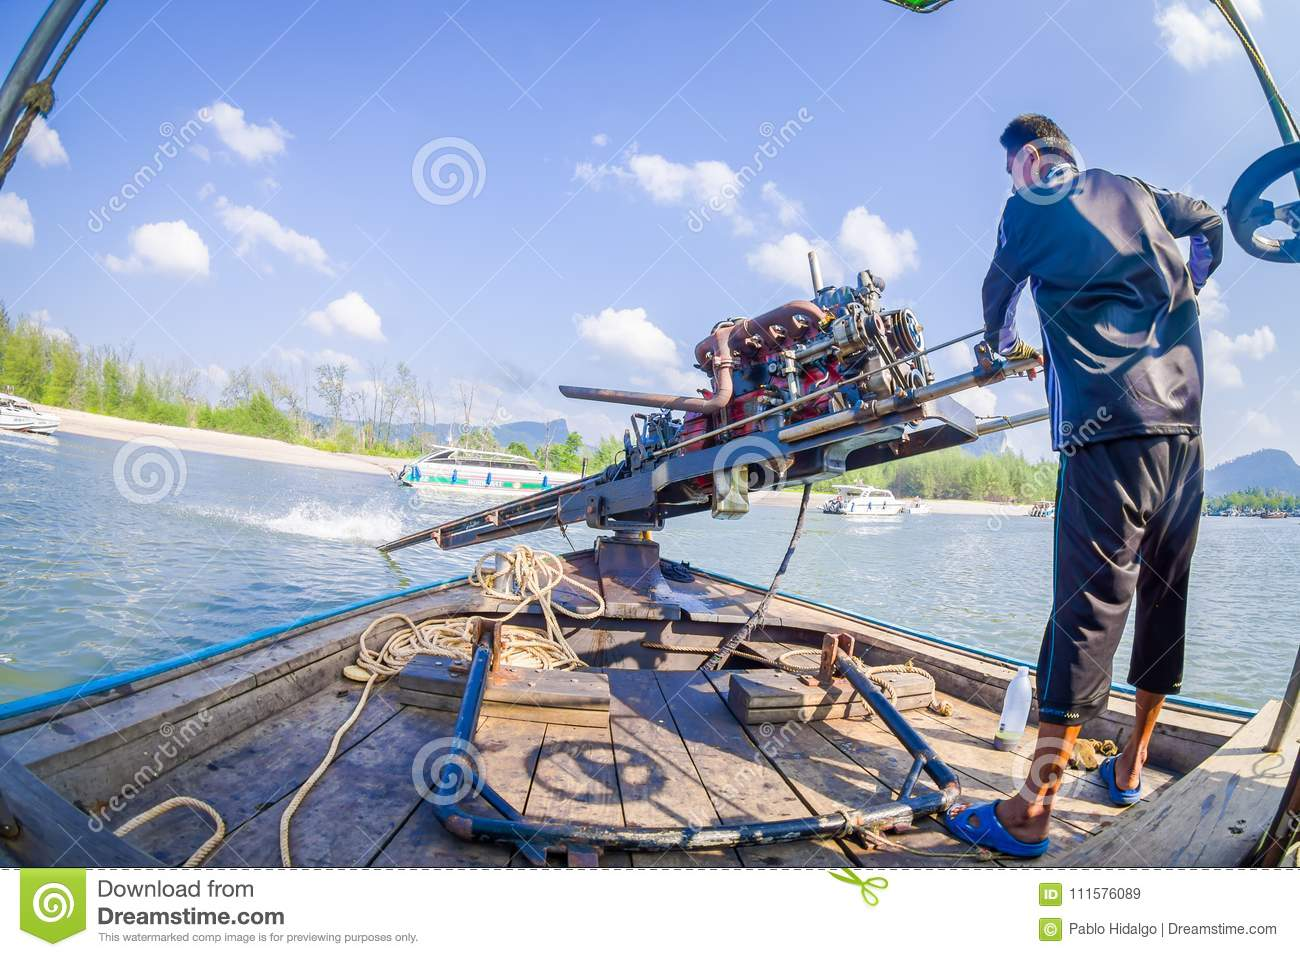 AO NANG, THAILAND - FEBRUARY 09, 2018: Close up of unidentified man manipulating a boat motor with a blurred nature